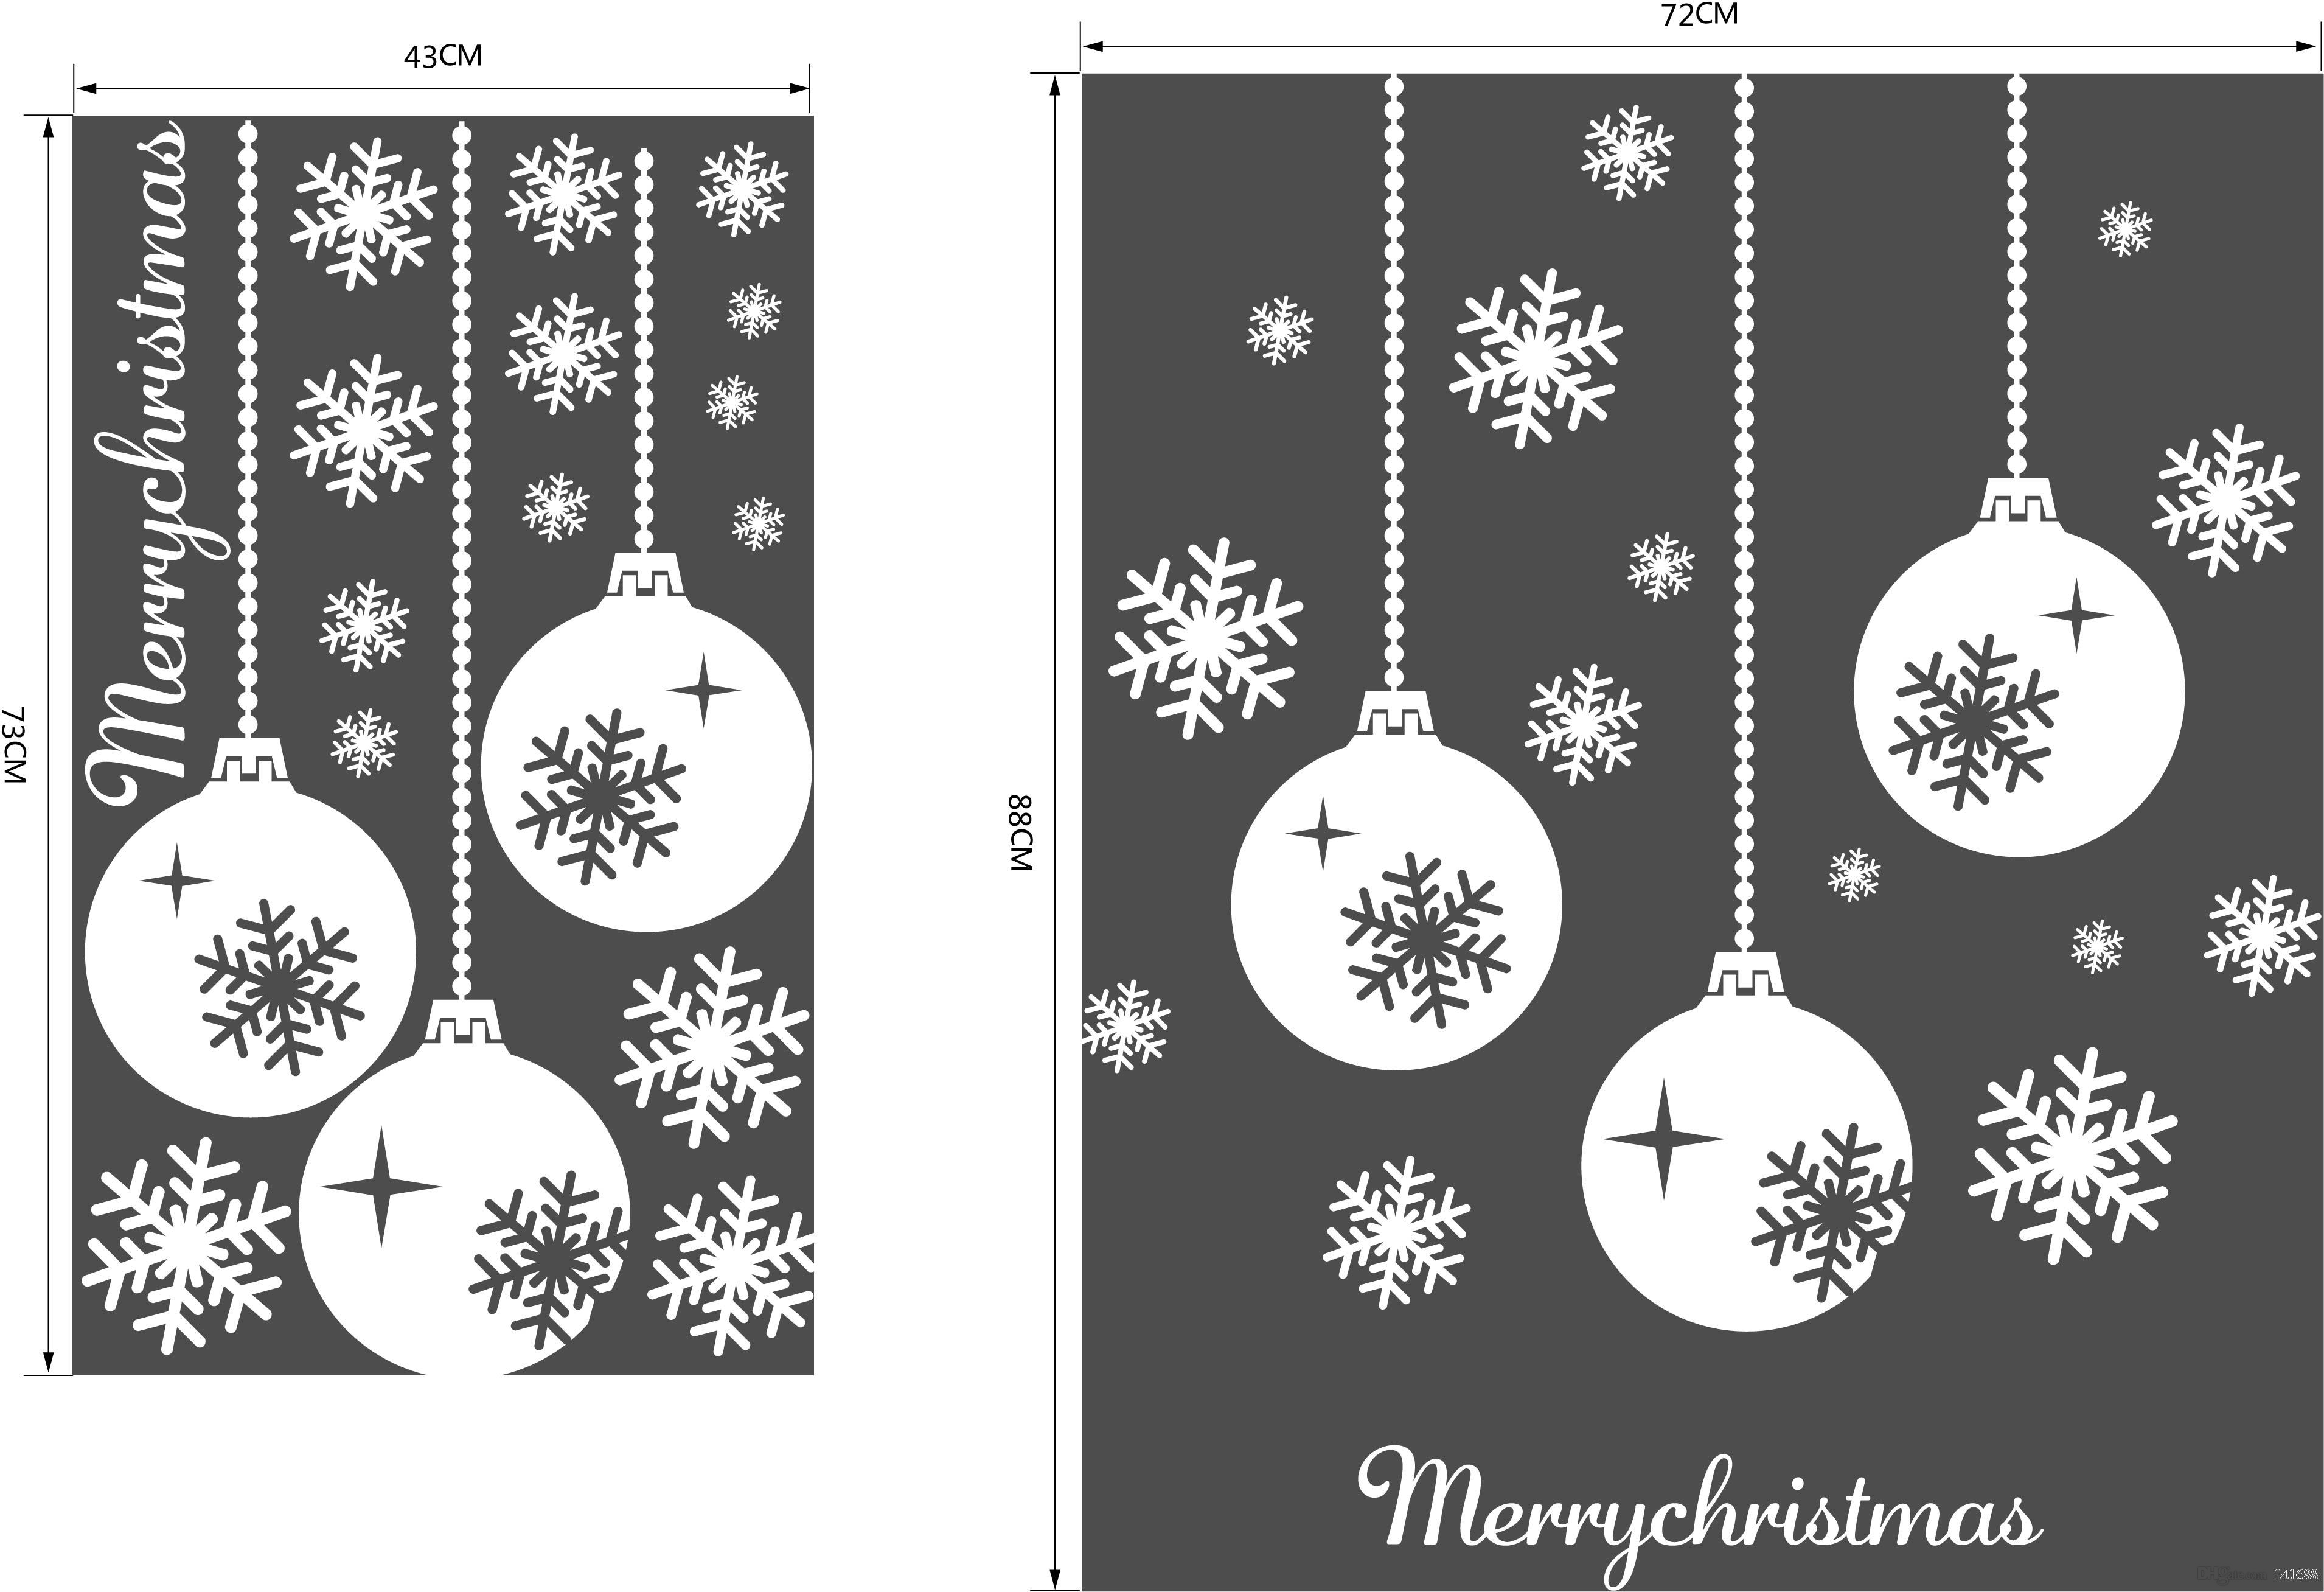 M-1 Christmas Snowflake Lantern Vinyl Wall Stickers Vinyl Xmas Merry Christmas Lamp Light Quote Removeable Decal for Baby Kids Shop Window